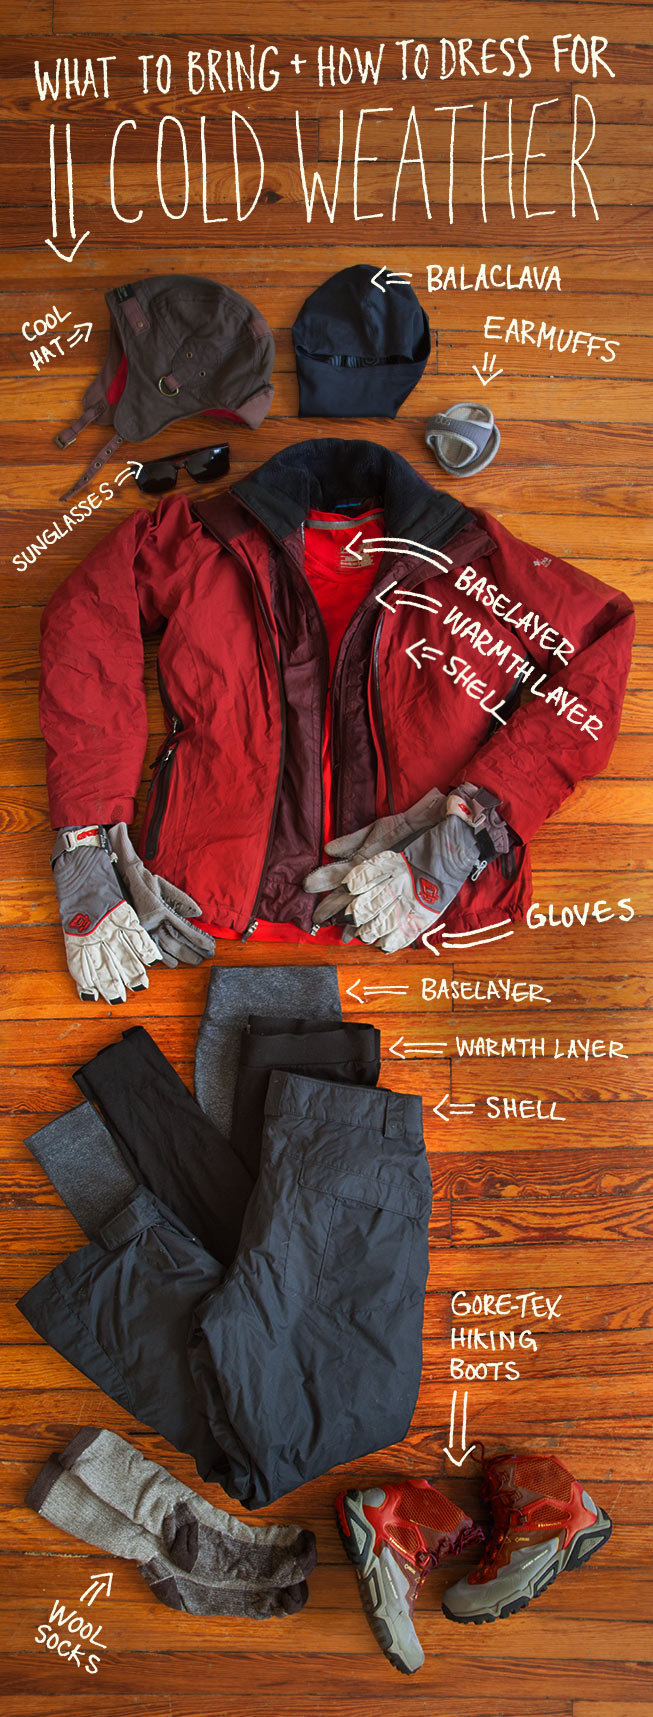 What to Bring and How to Dress for Cold Weather Backpacking